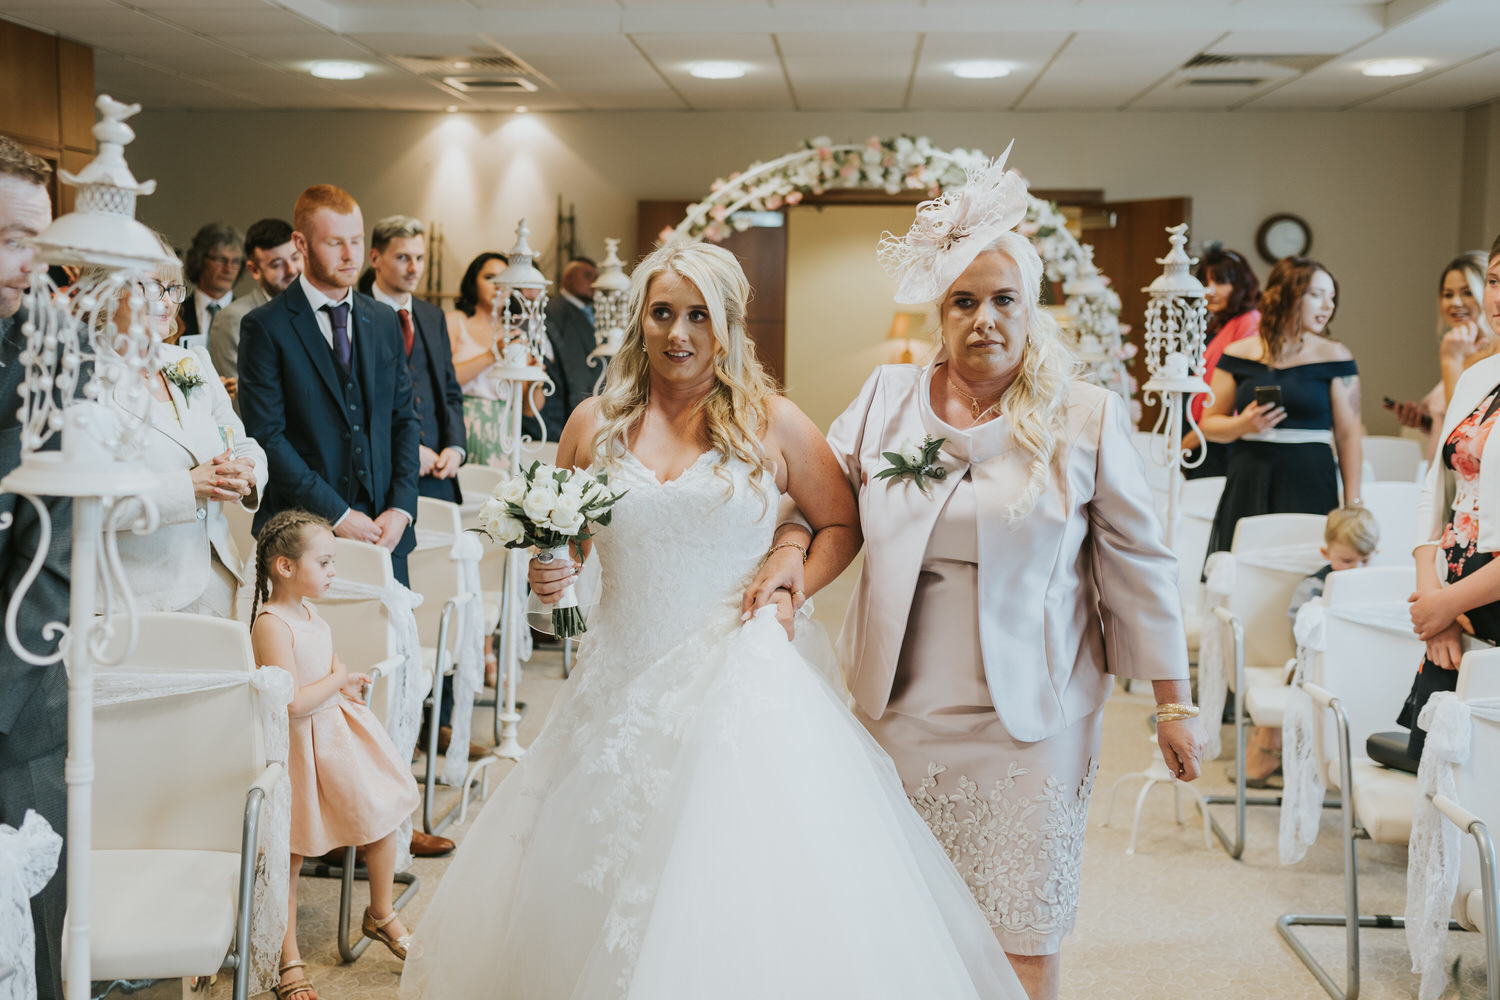 Lisburn Wedding at Lagan Valley Island 49